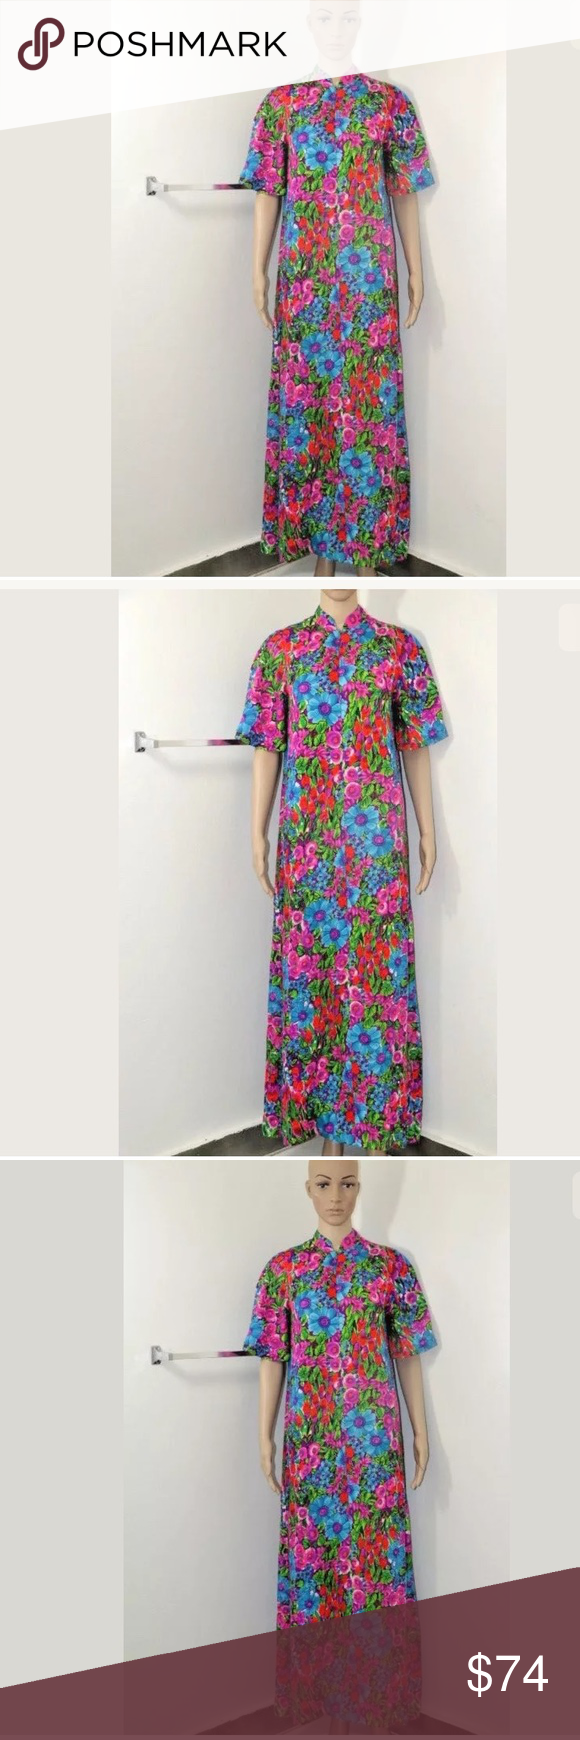 Vintage day gown psychodelic house dress tershe my posh picks